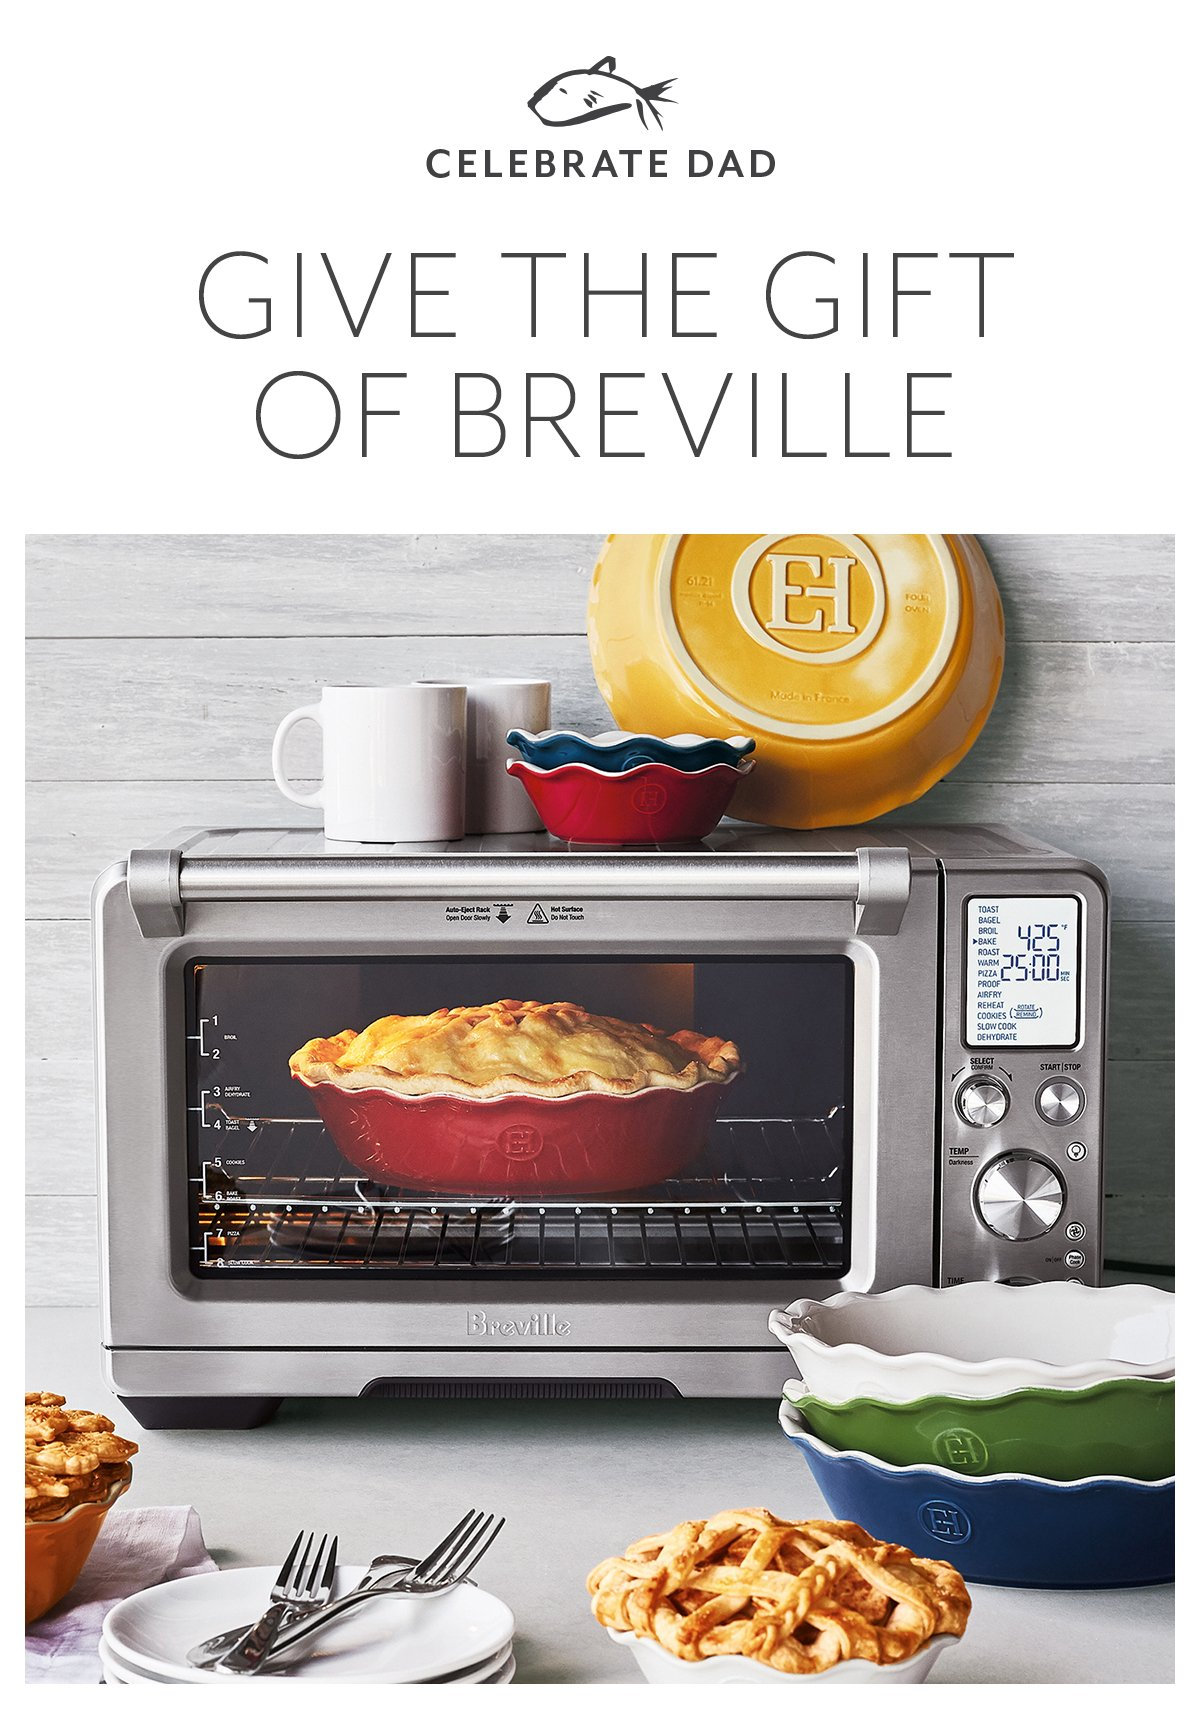 Give the Gift of Breville